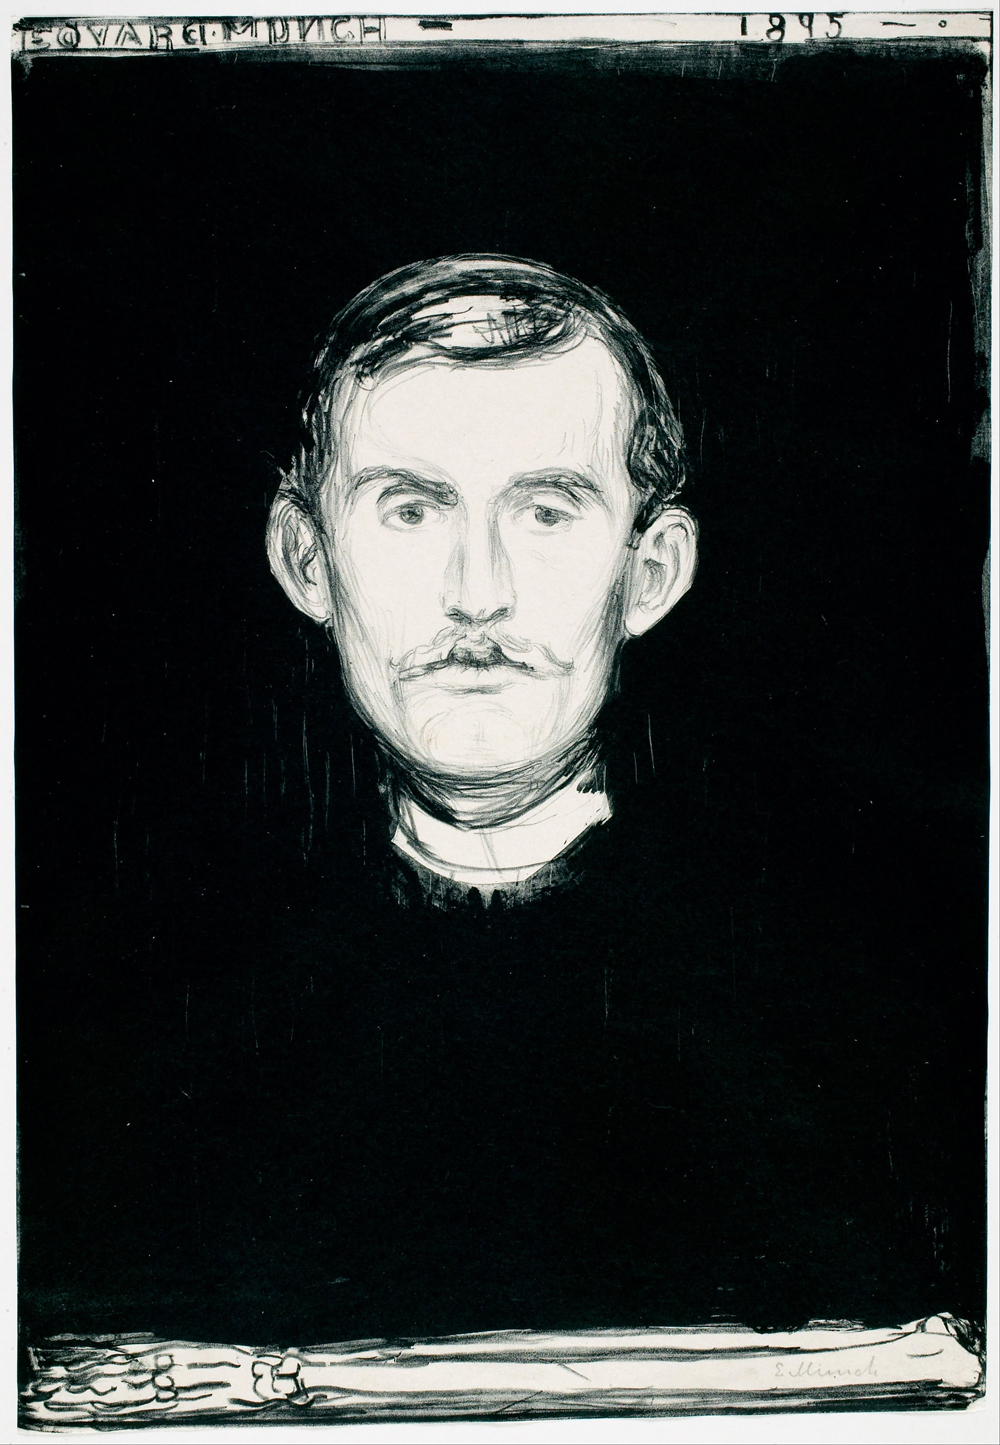 Edvard_Munch_-_Self-Portrait2